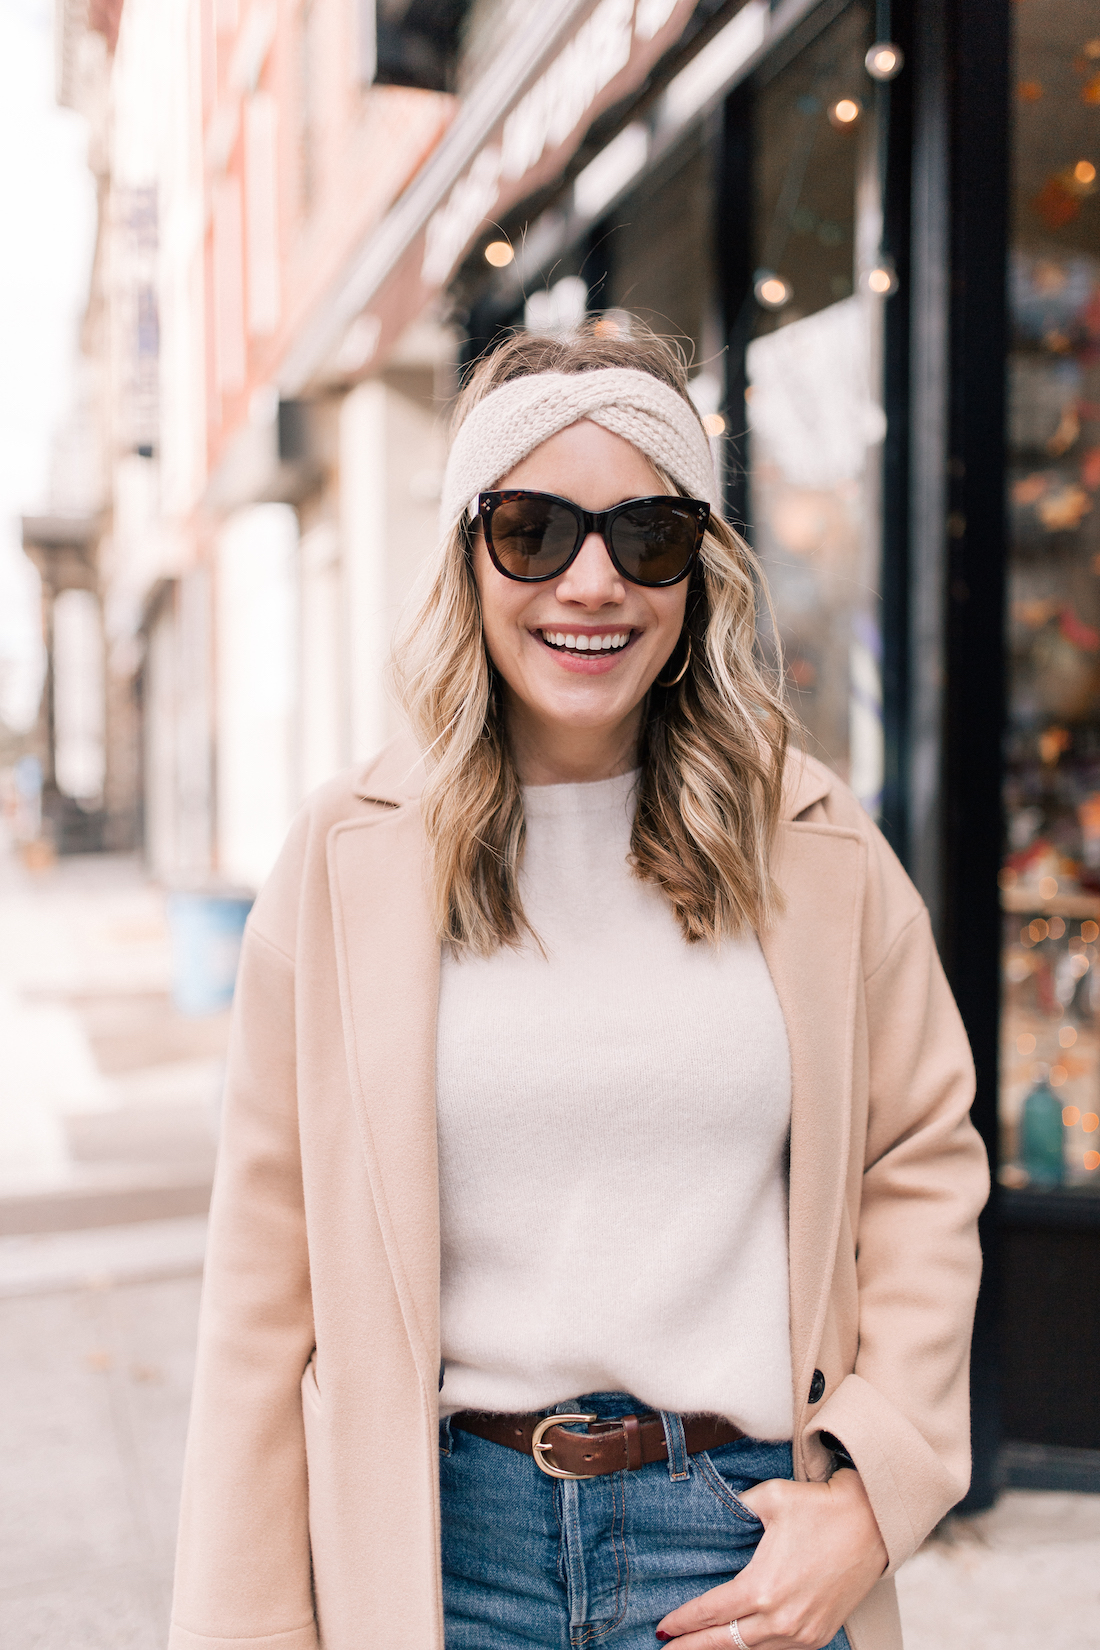 Outfit Details:Topshop Coat(exact) // Eileen Fisher Sweater(c/o) // Eileen Fisher Headband (c/o)// Levi's Jeans // Polaroid Sunglasses //